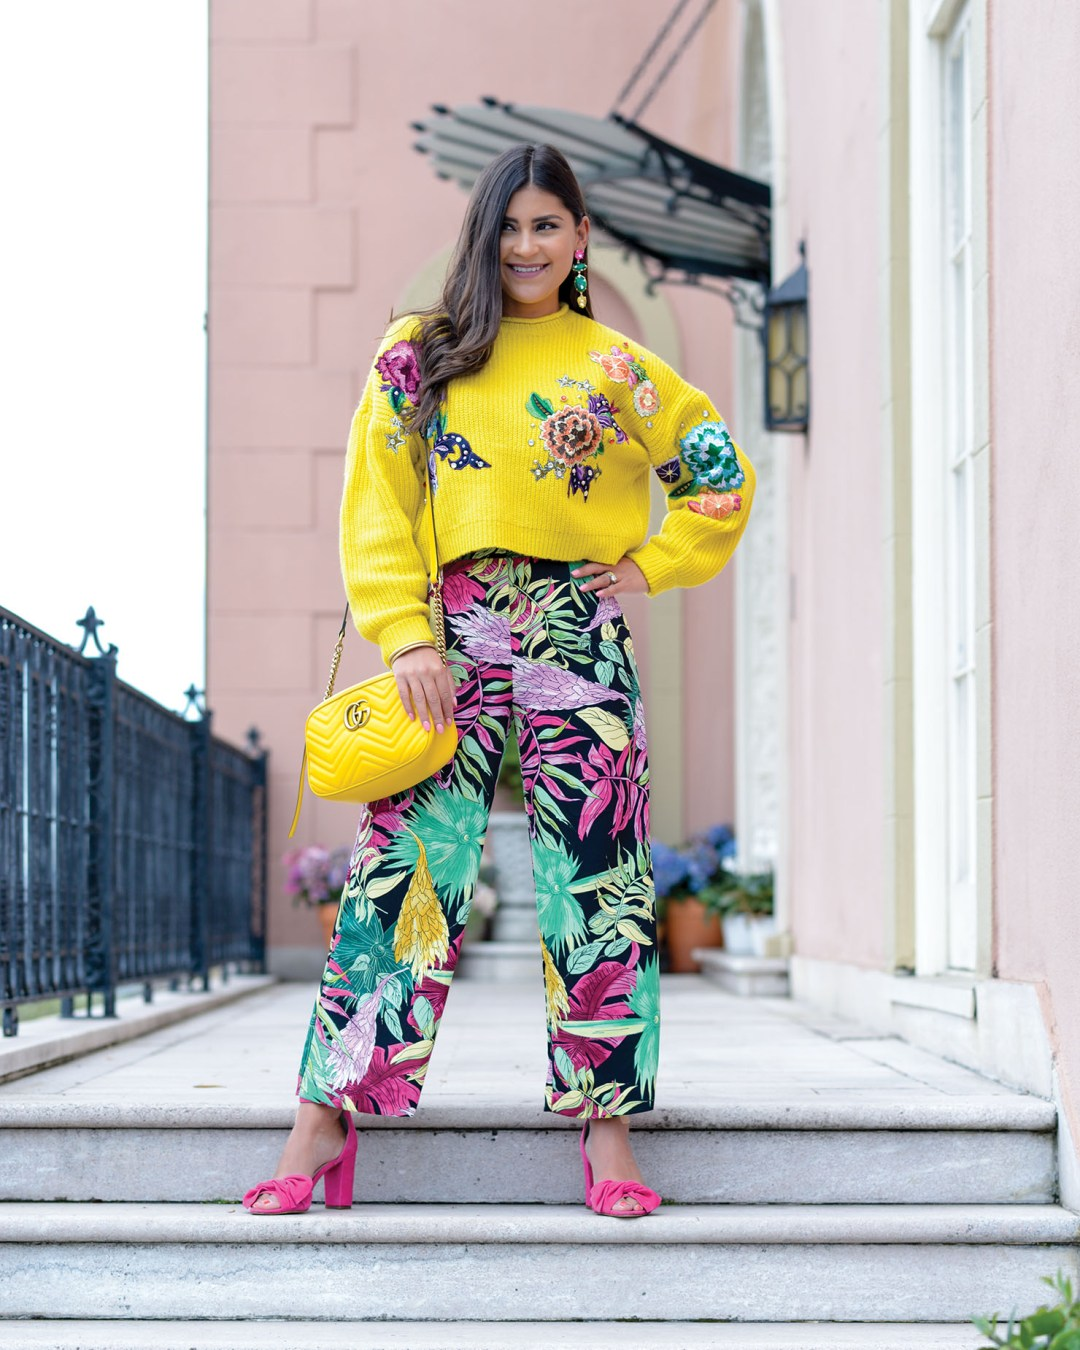 Lifestyle Blogger Kelsey Kaplan of Kelsey Kaplan Fashion wearing palm print pants and yellow gucci purse